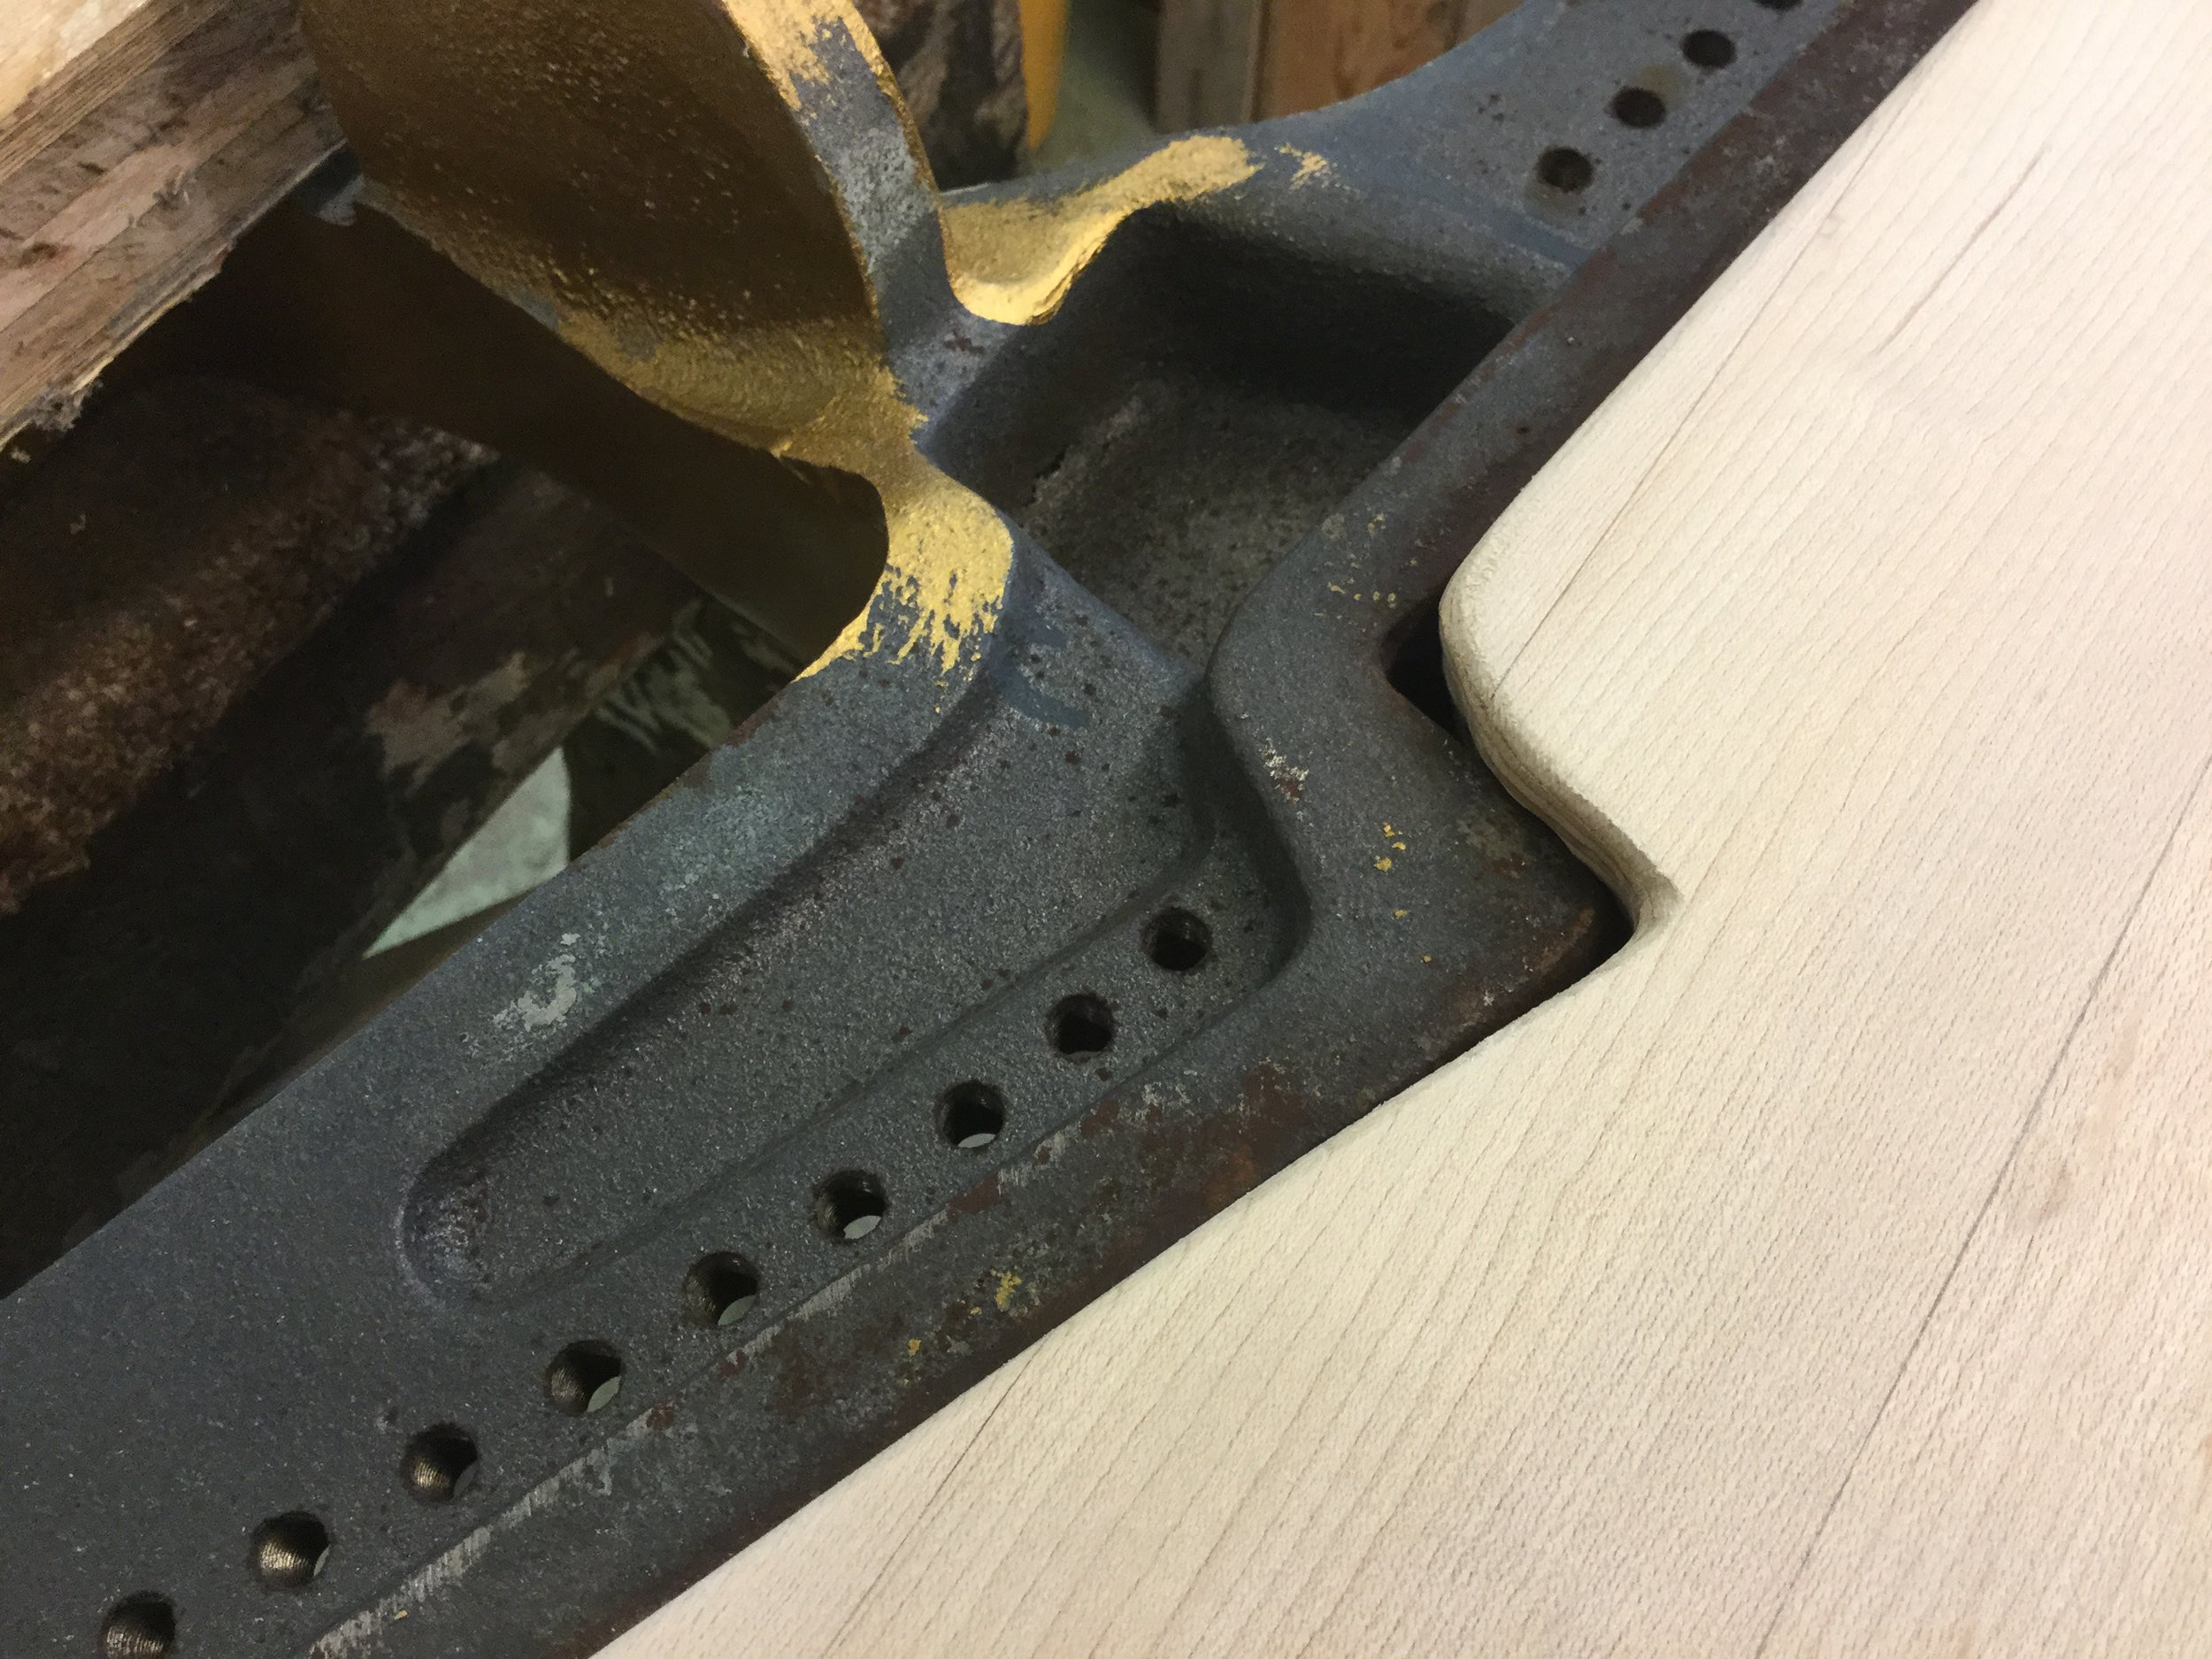 The original was not that great of a fit against the Plate Flange